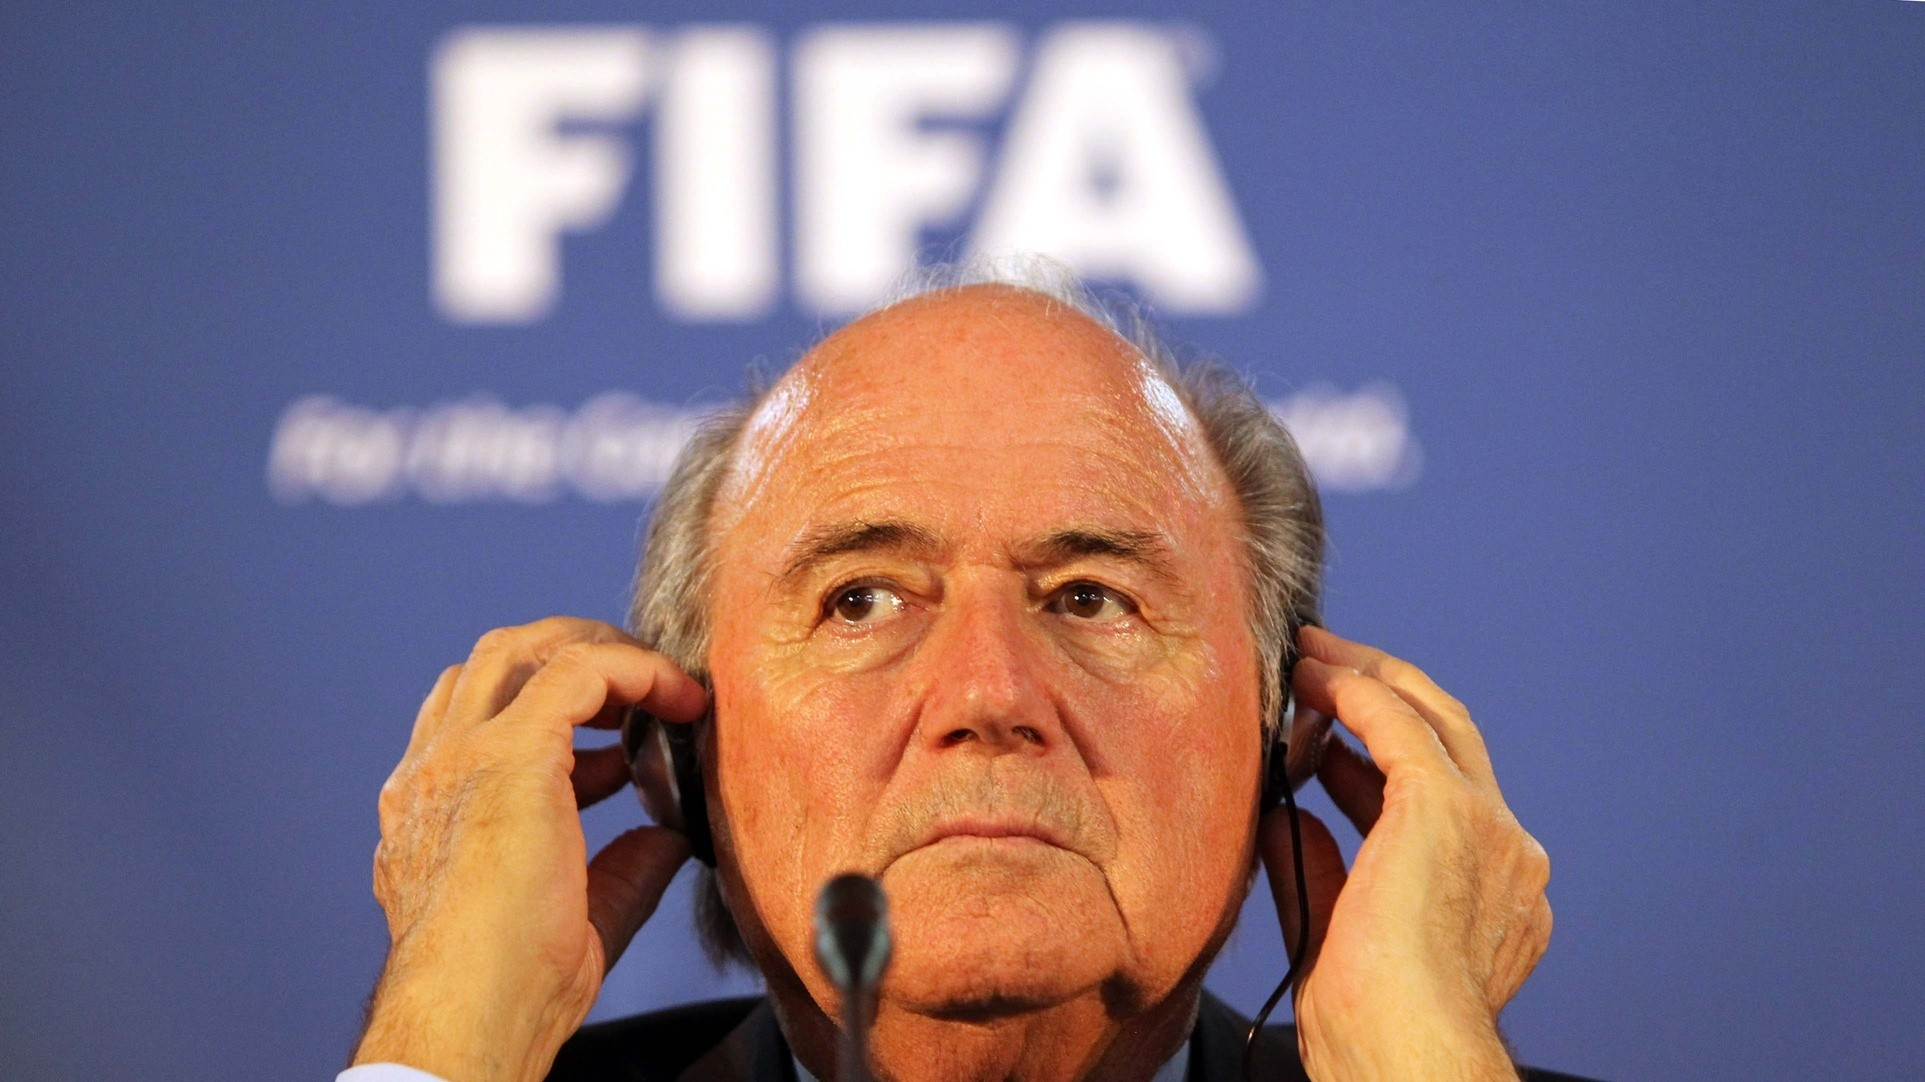 An Open Letter to Congress About Open Letters to Sepp Blatter